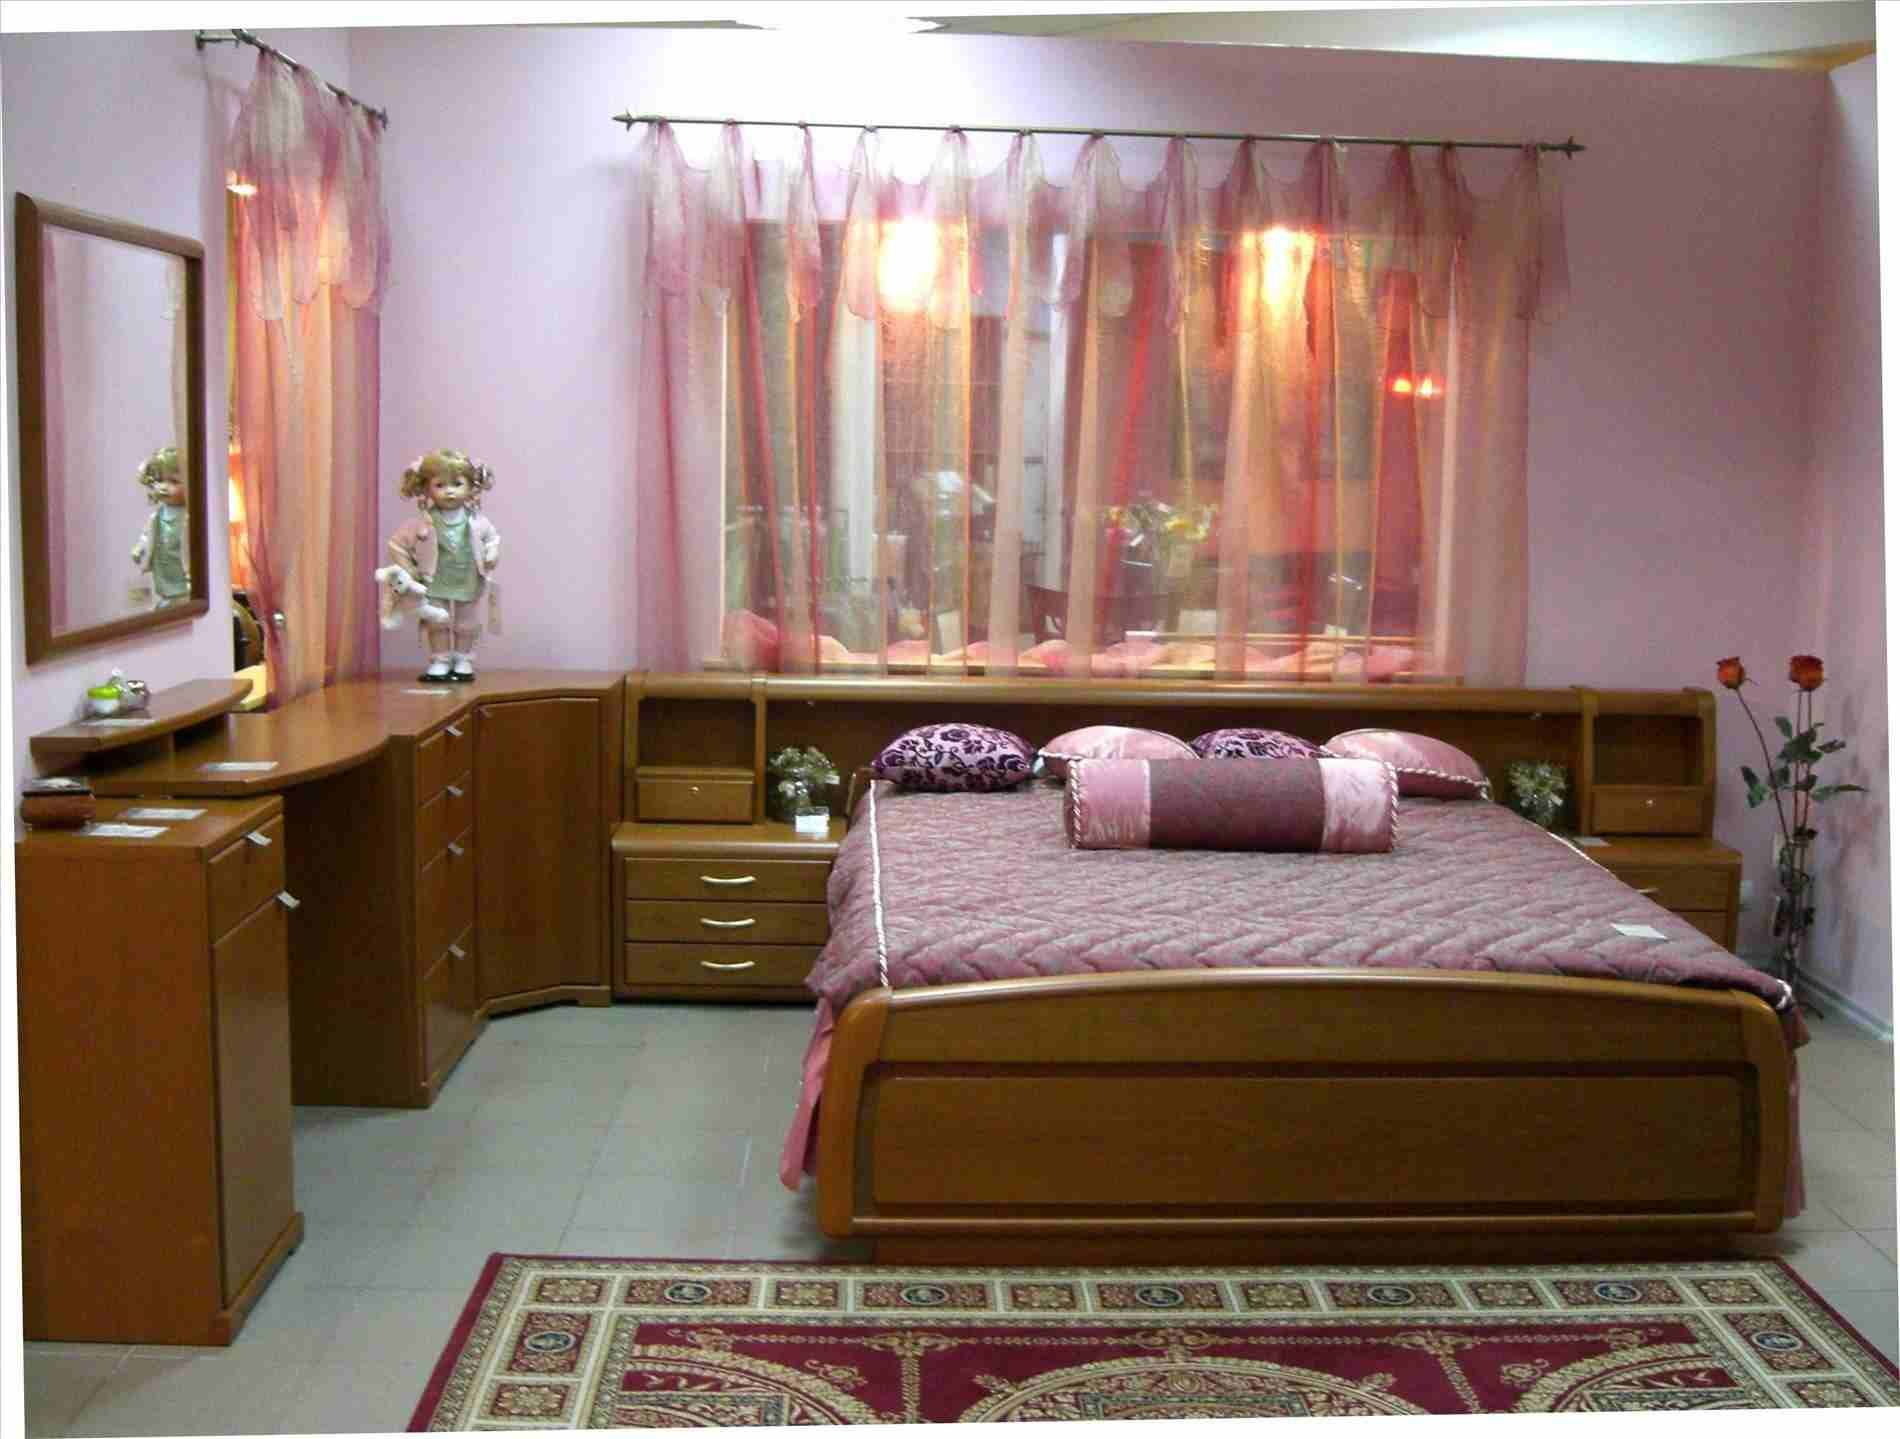 Bedroom Designs In Kerala Bedroom Designs Kerala Modern Contemporary Bedroom Designs Kera Simple Bedroom Design Simple Bedroom House Interior Design Pictures